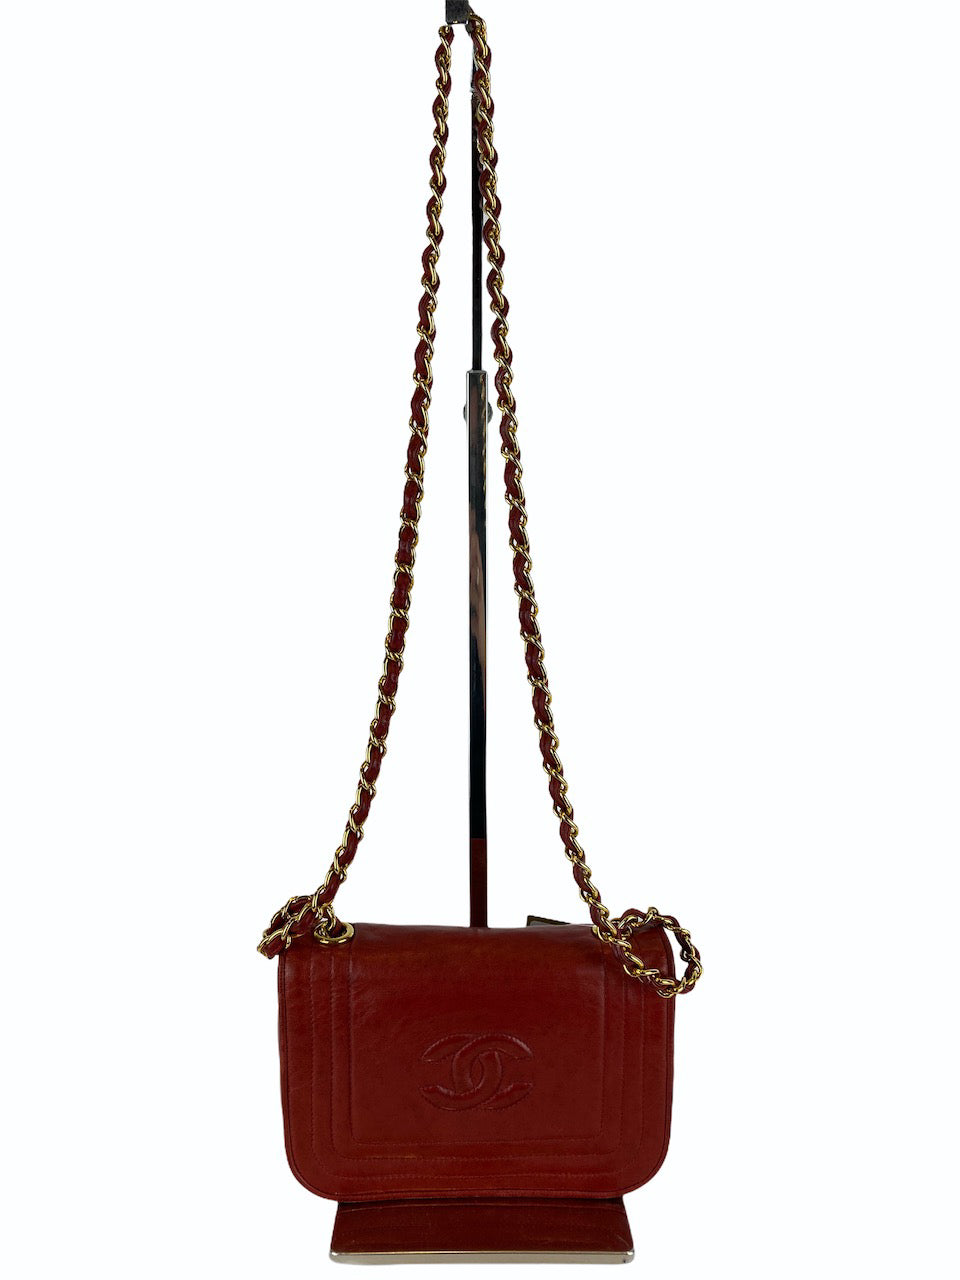 Chanel Red Lambskin Leather Mini Flap Crossbody - As Seen on Instagram 20/09/2020